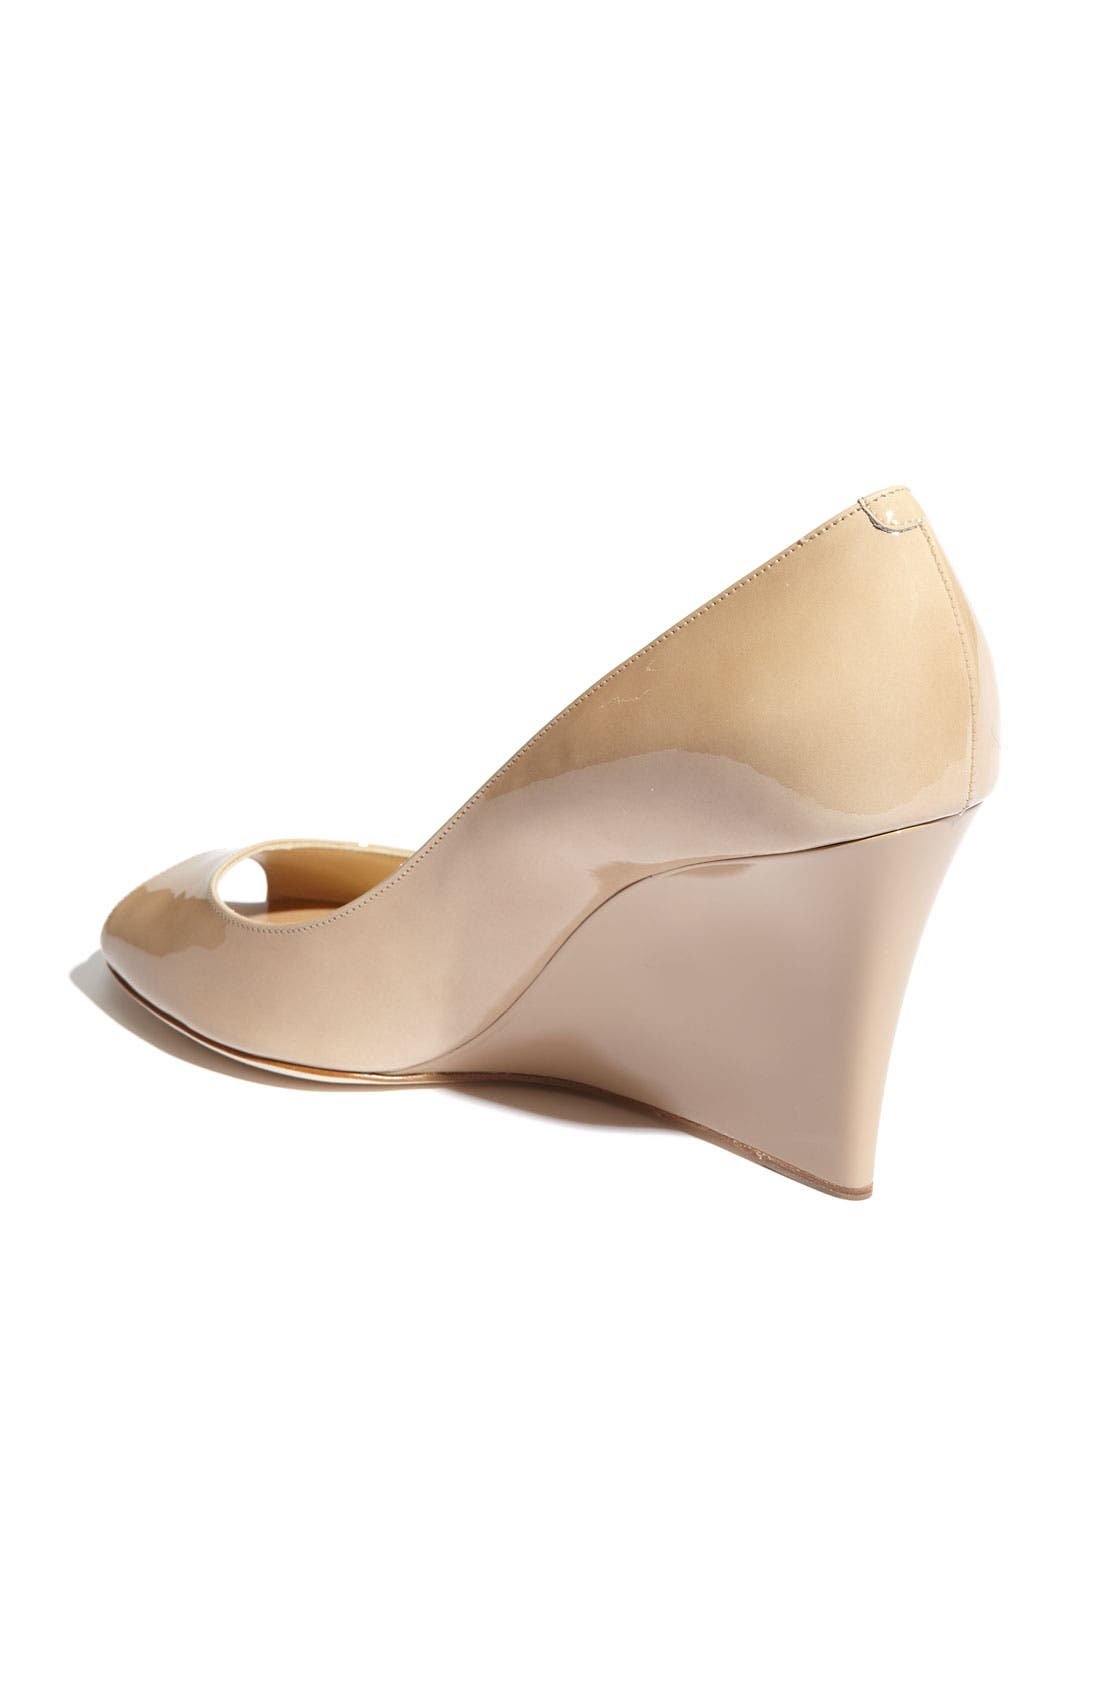 Alternate Image 2  - Jimmy Choo 'Baxen' Peep Toe Wedge